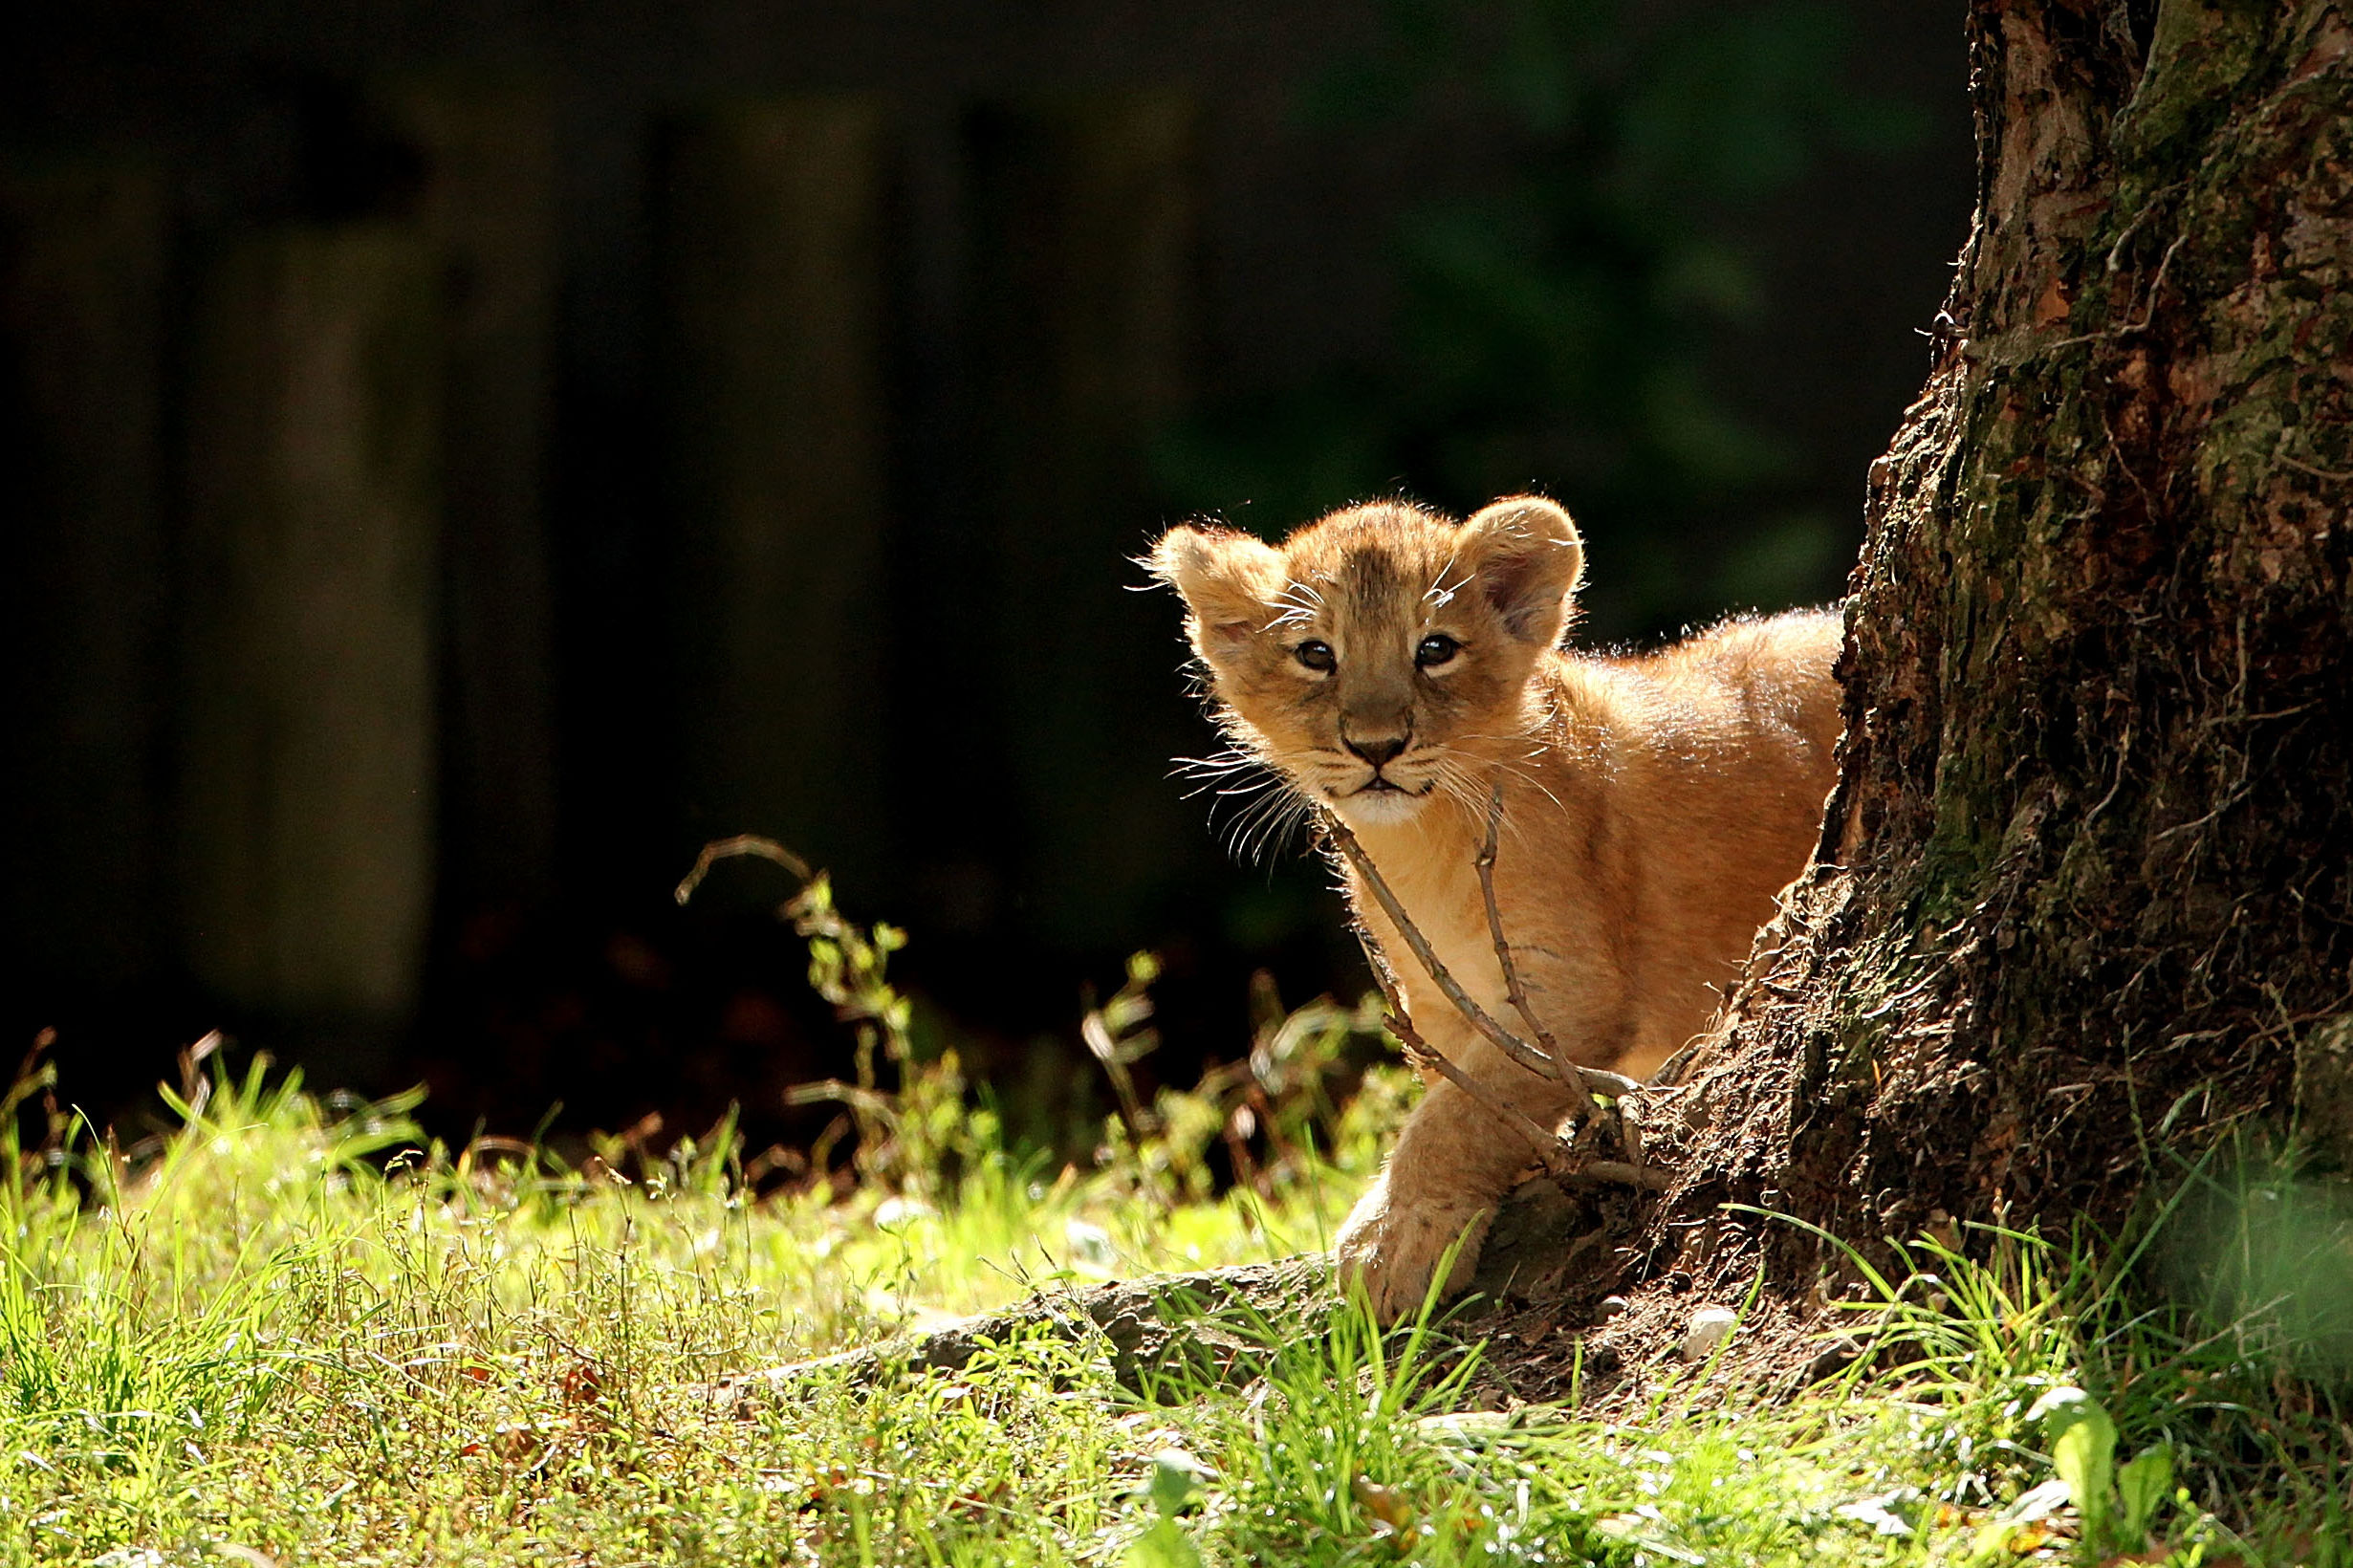 Watch This Adorable Zoo-Goer Get a Visit From the Lions